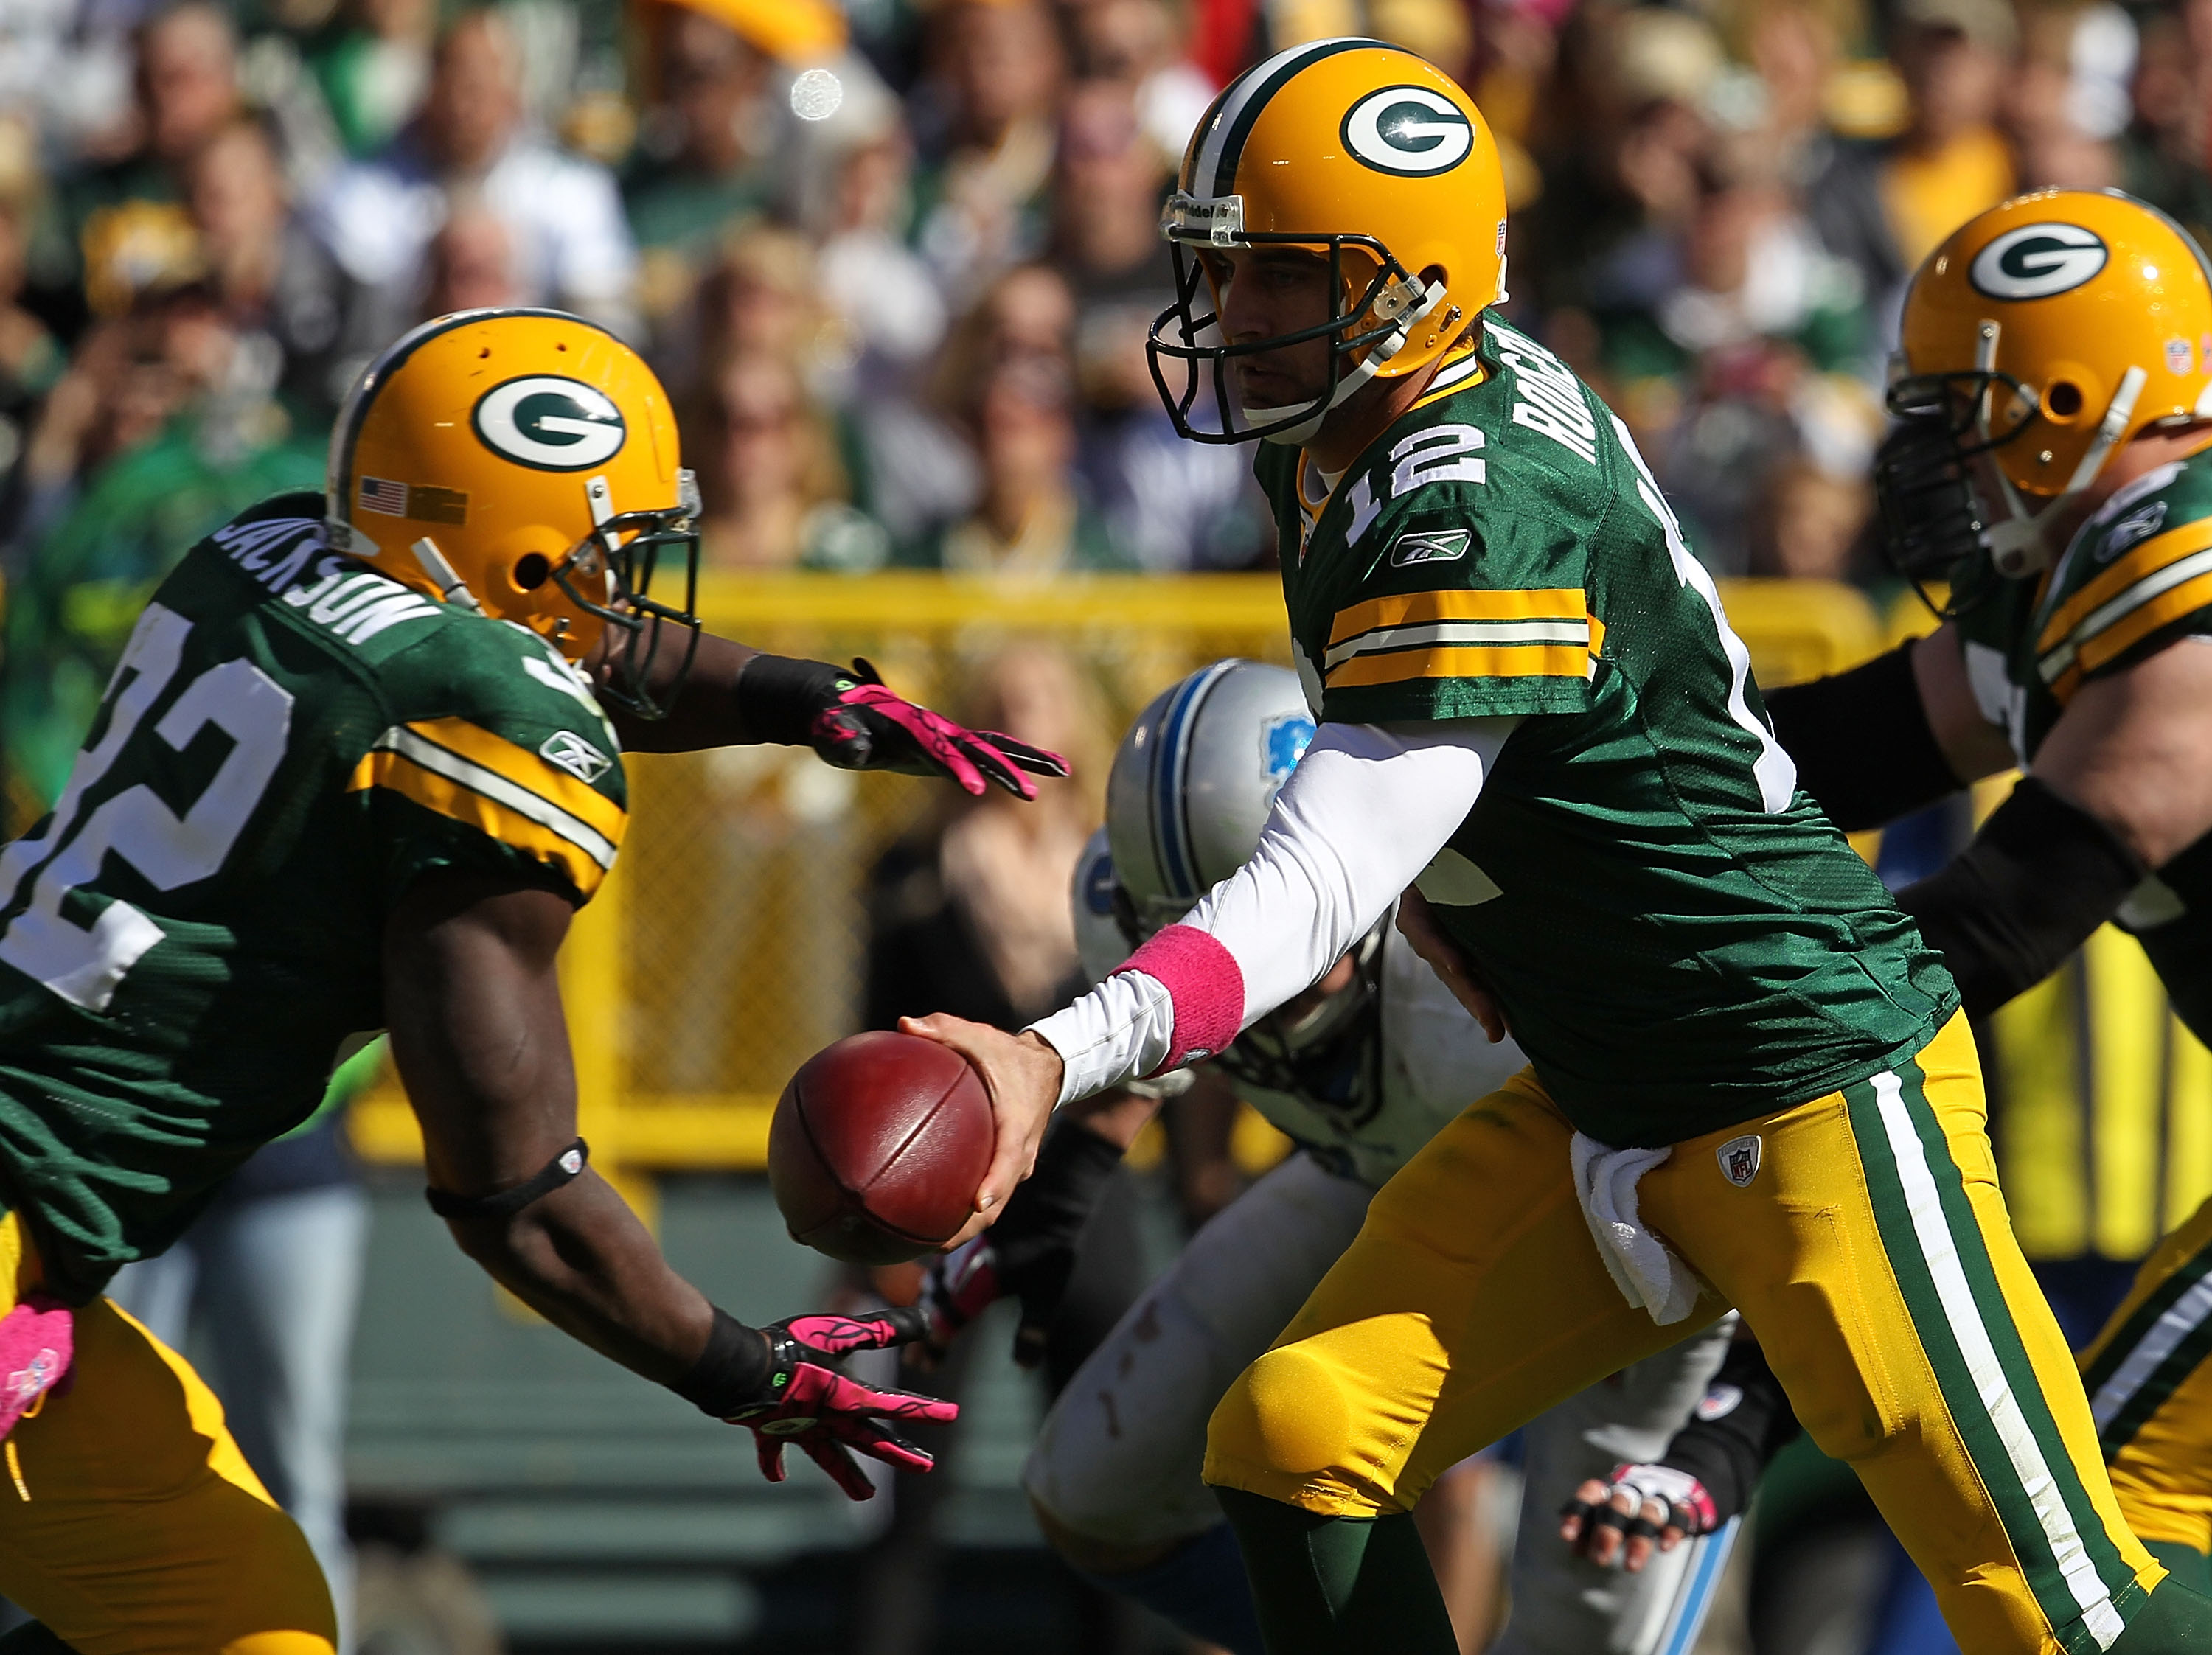 GREEN BAY, WI - OCTOBER 03: Aaron Rodgers #12 of the Green Bay Packers hands off to Brandon Jackson #32 against the Detroit Lions at Lambeau Field on October 3, 2010 in Green Bay, Wisconsin. The Packers defeated the Lions 28-26. (Photo by Jonathan Daniel/